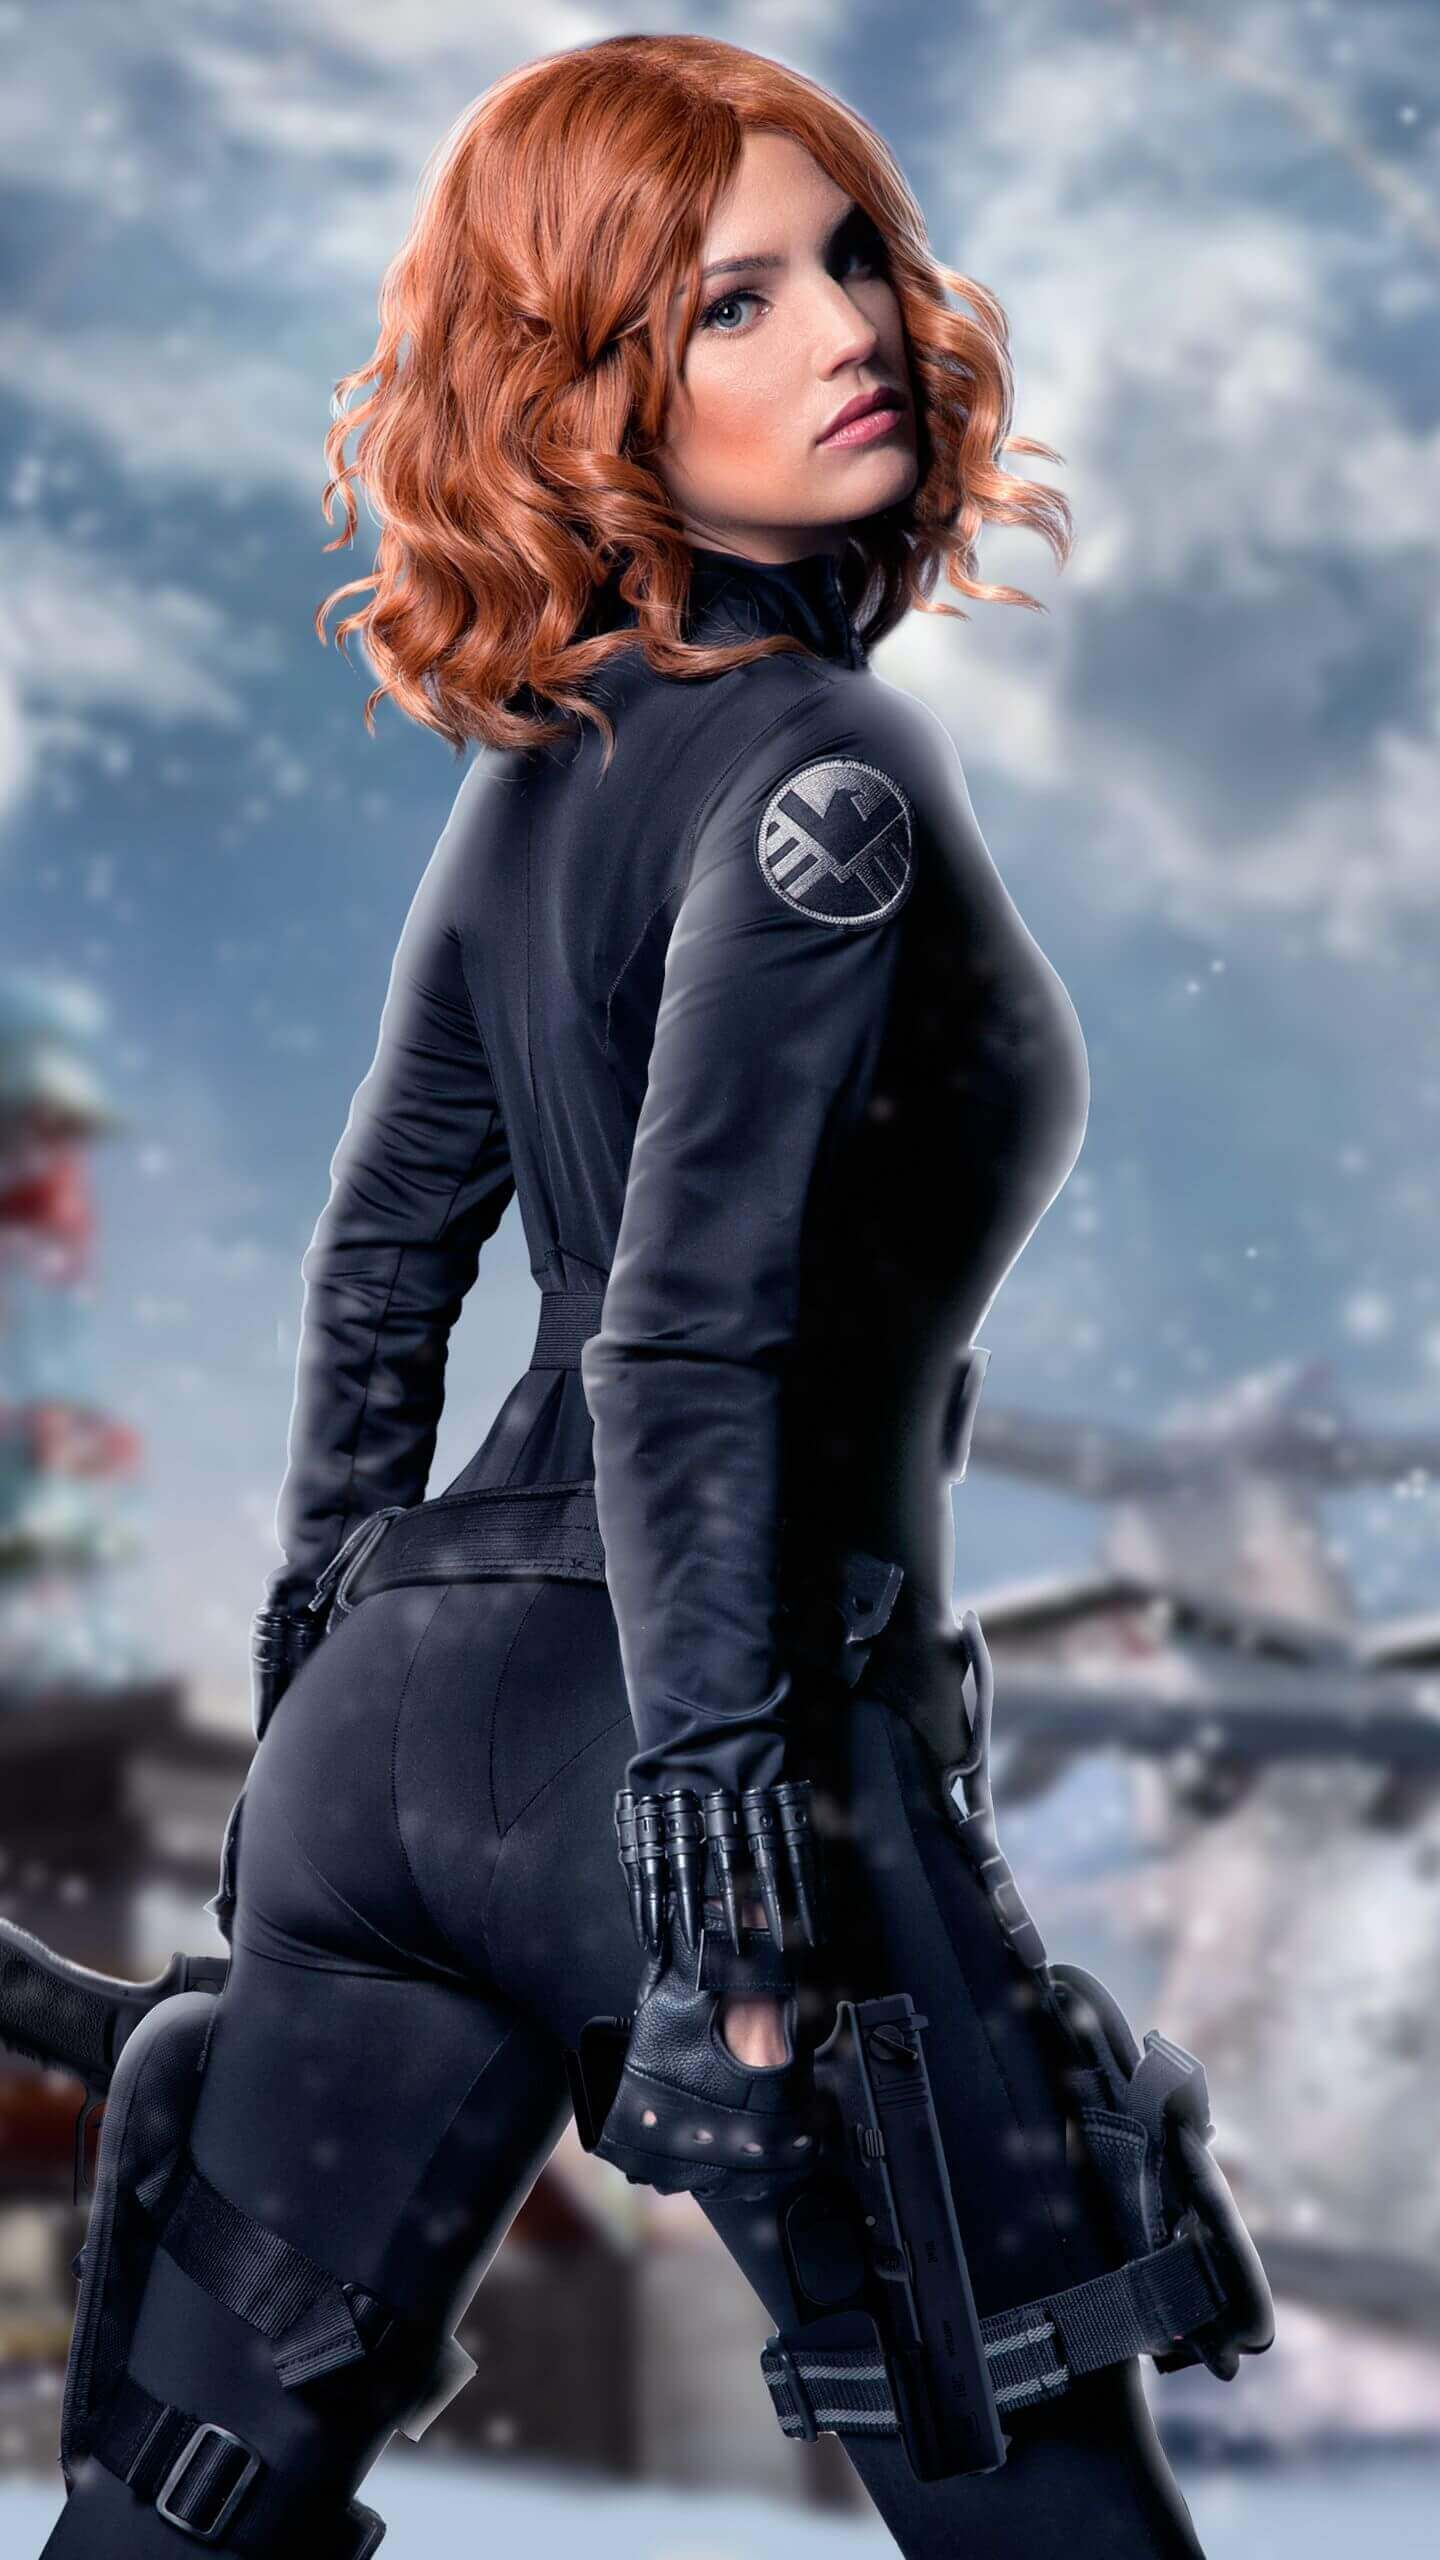 Black Widow ass pics